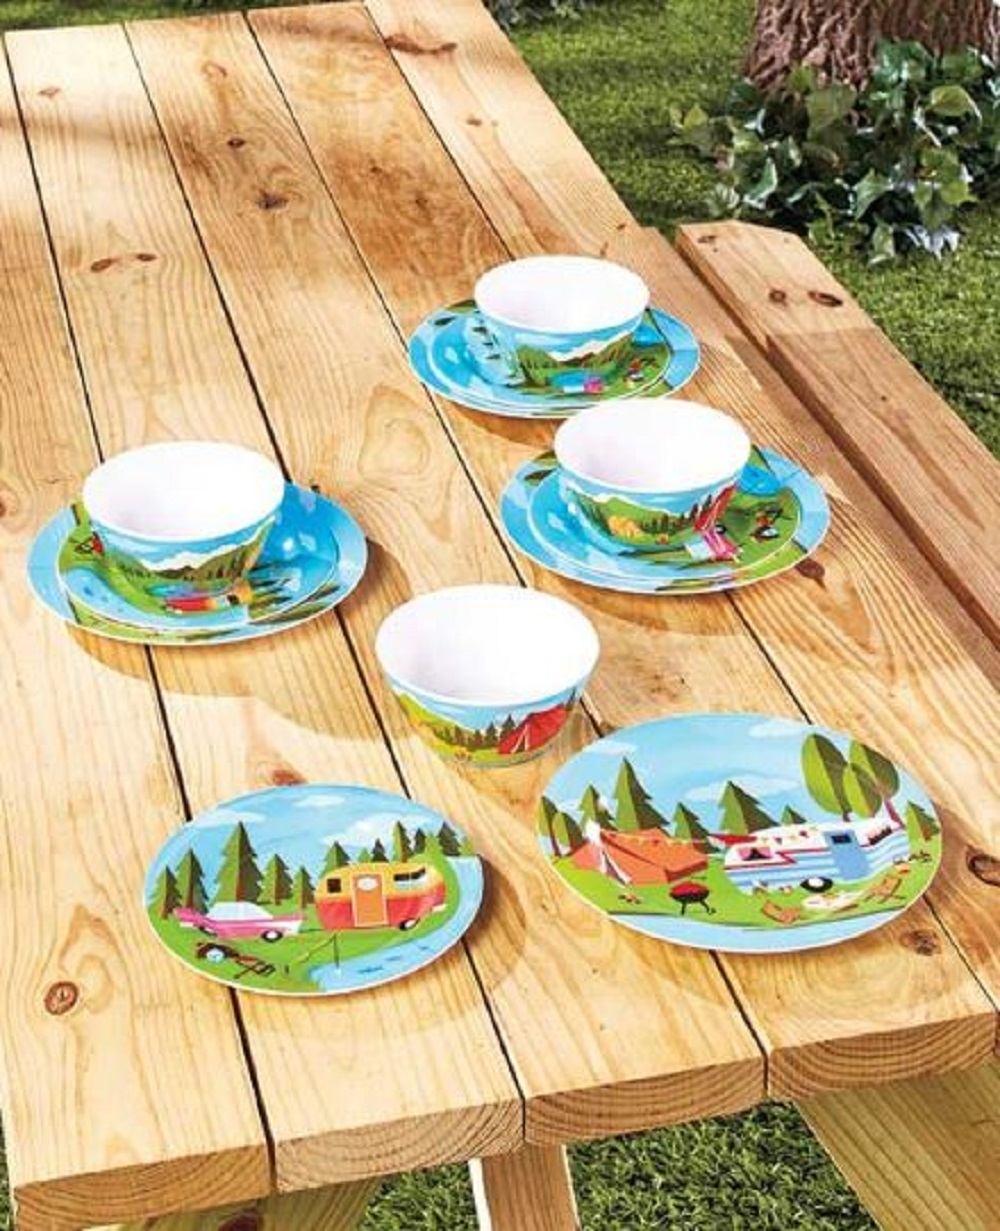 Happy Camper Retro Dish Set Plates Bowls Camping Design Matching Trays Melamine